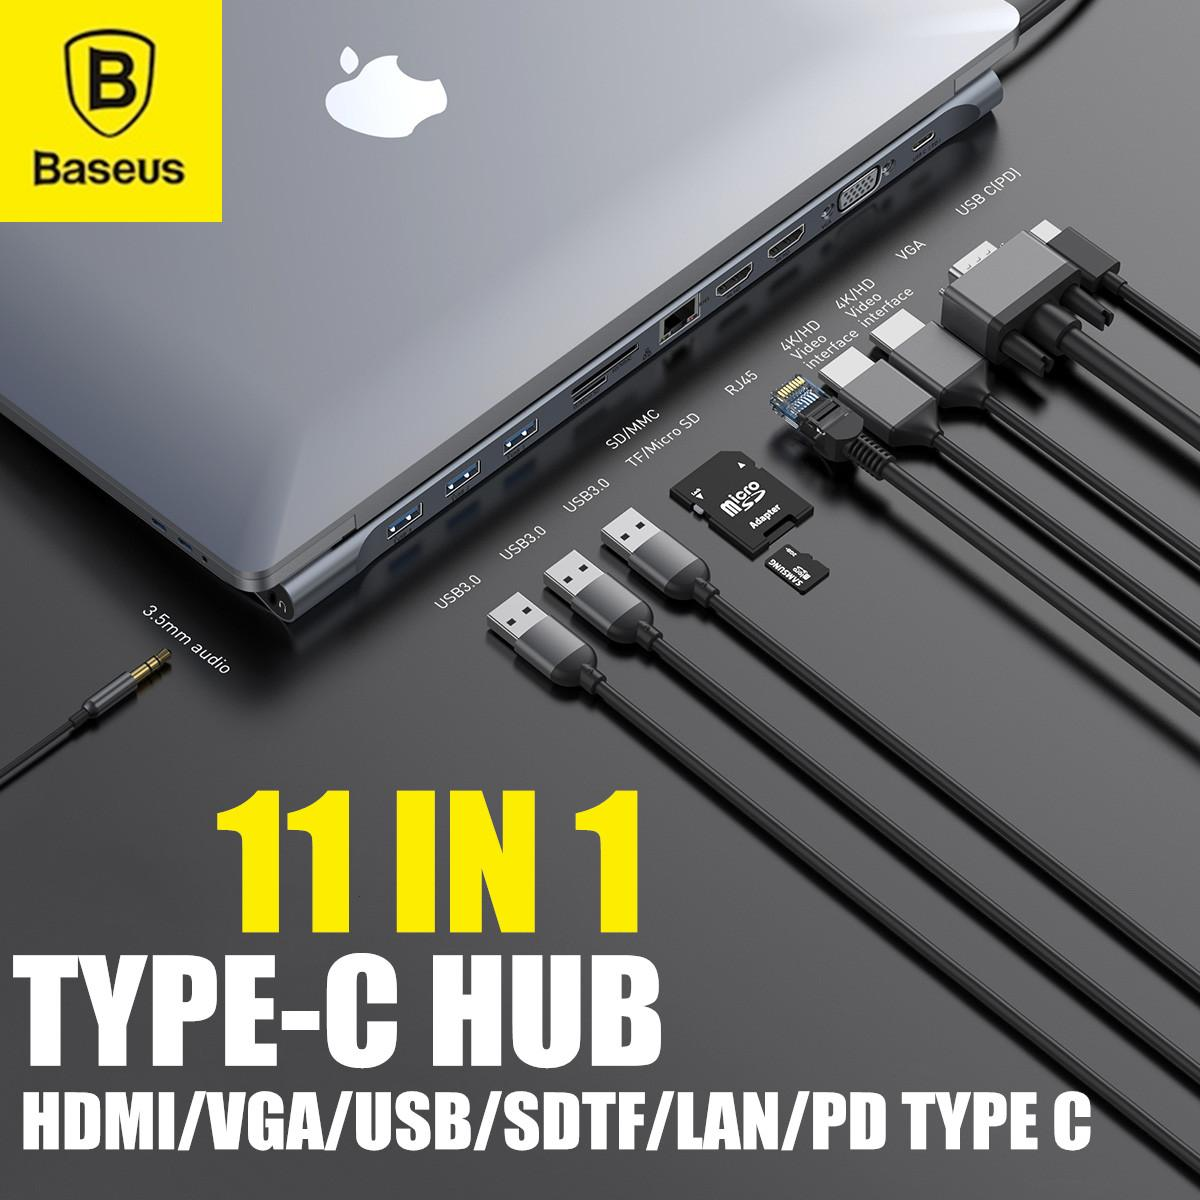 MeterMall Electronics for Mini USB 3.0 Type-C 3.0 HUB 4 Port Power Supply for MacBook Laptop Tablet Computer Type-C 3.0 4 Port